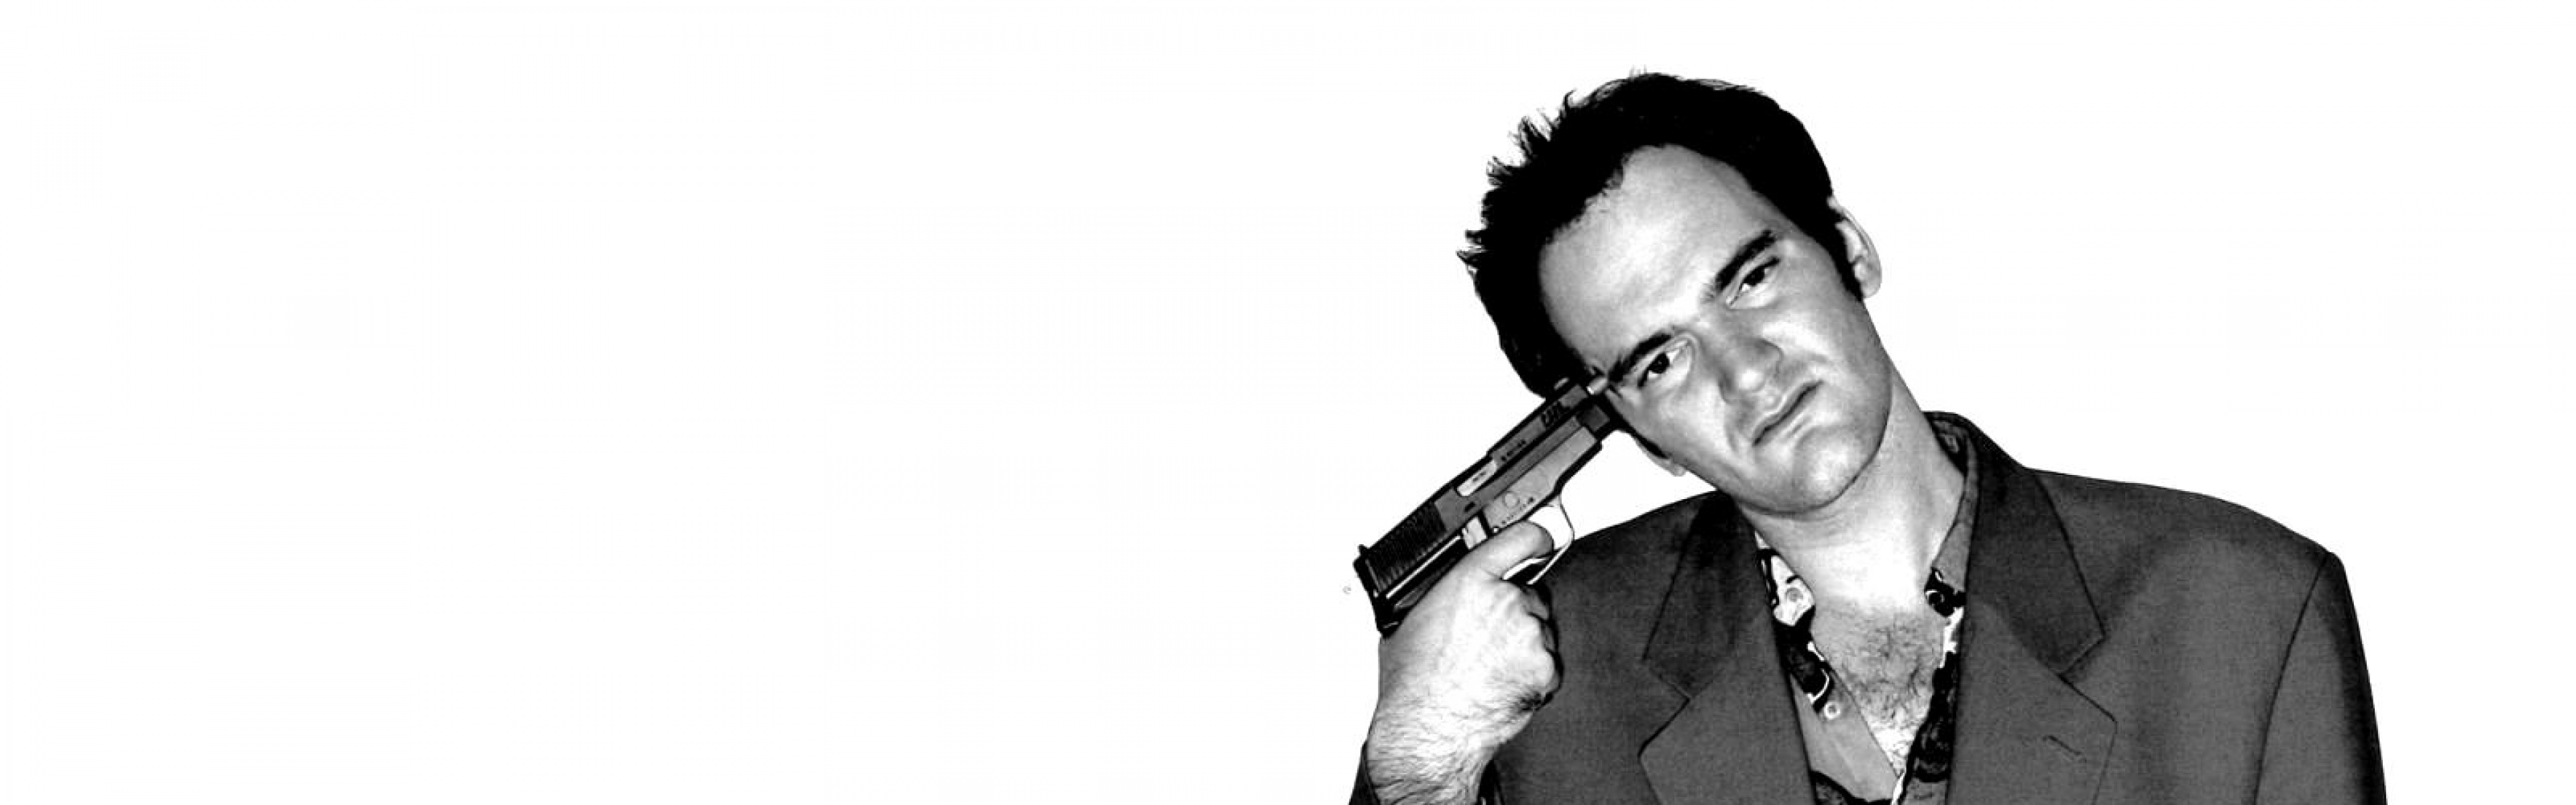 Tarantino Wallpaper